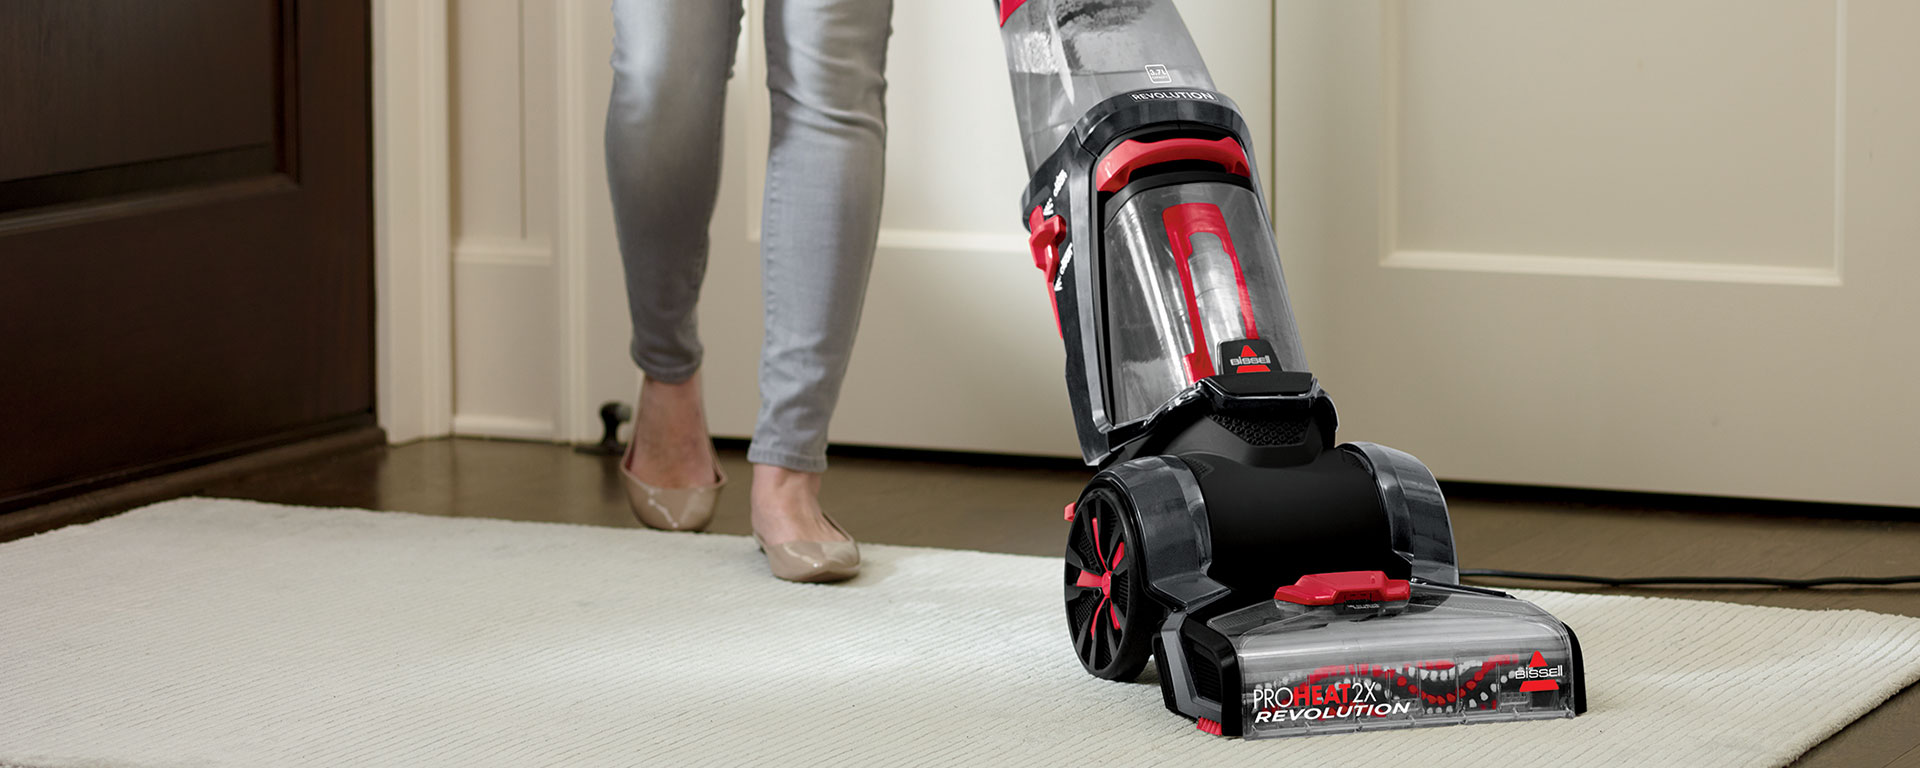 floor cleaner hitchin hard appliances quickwash in p bissell home other and carpet floors